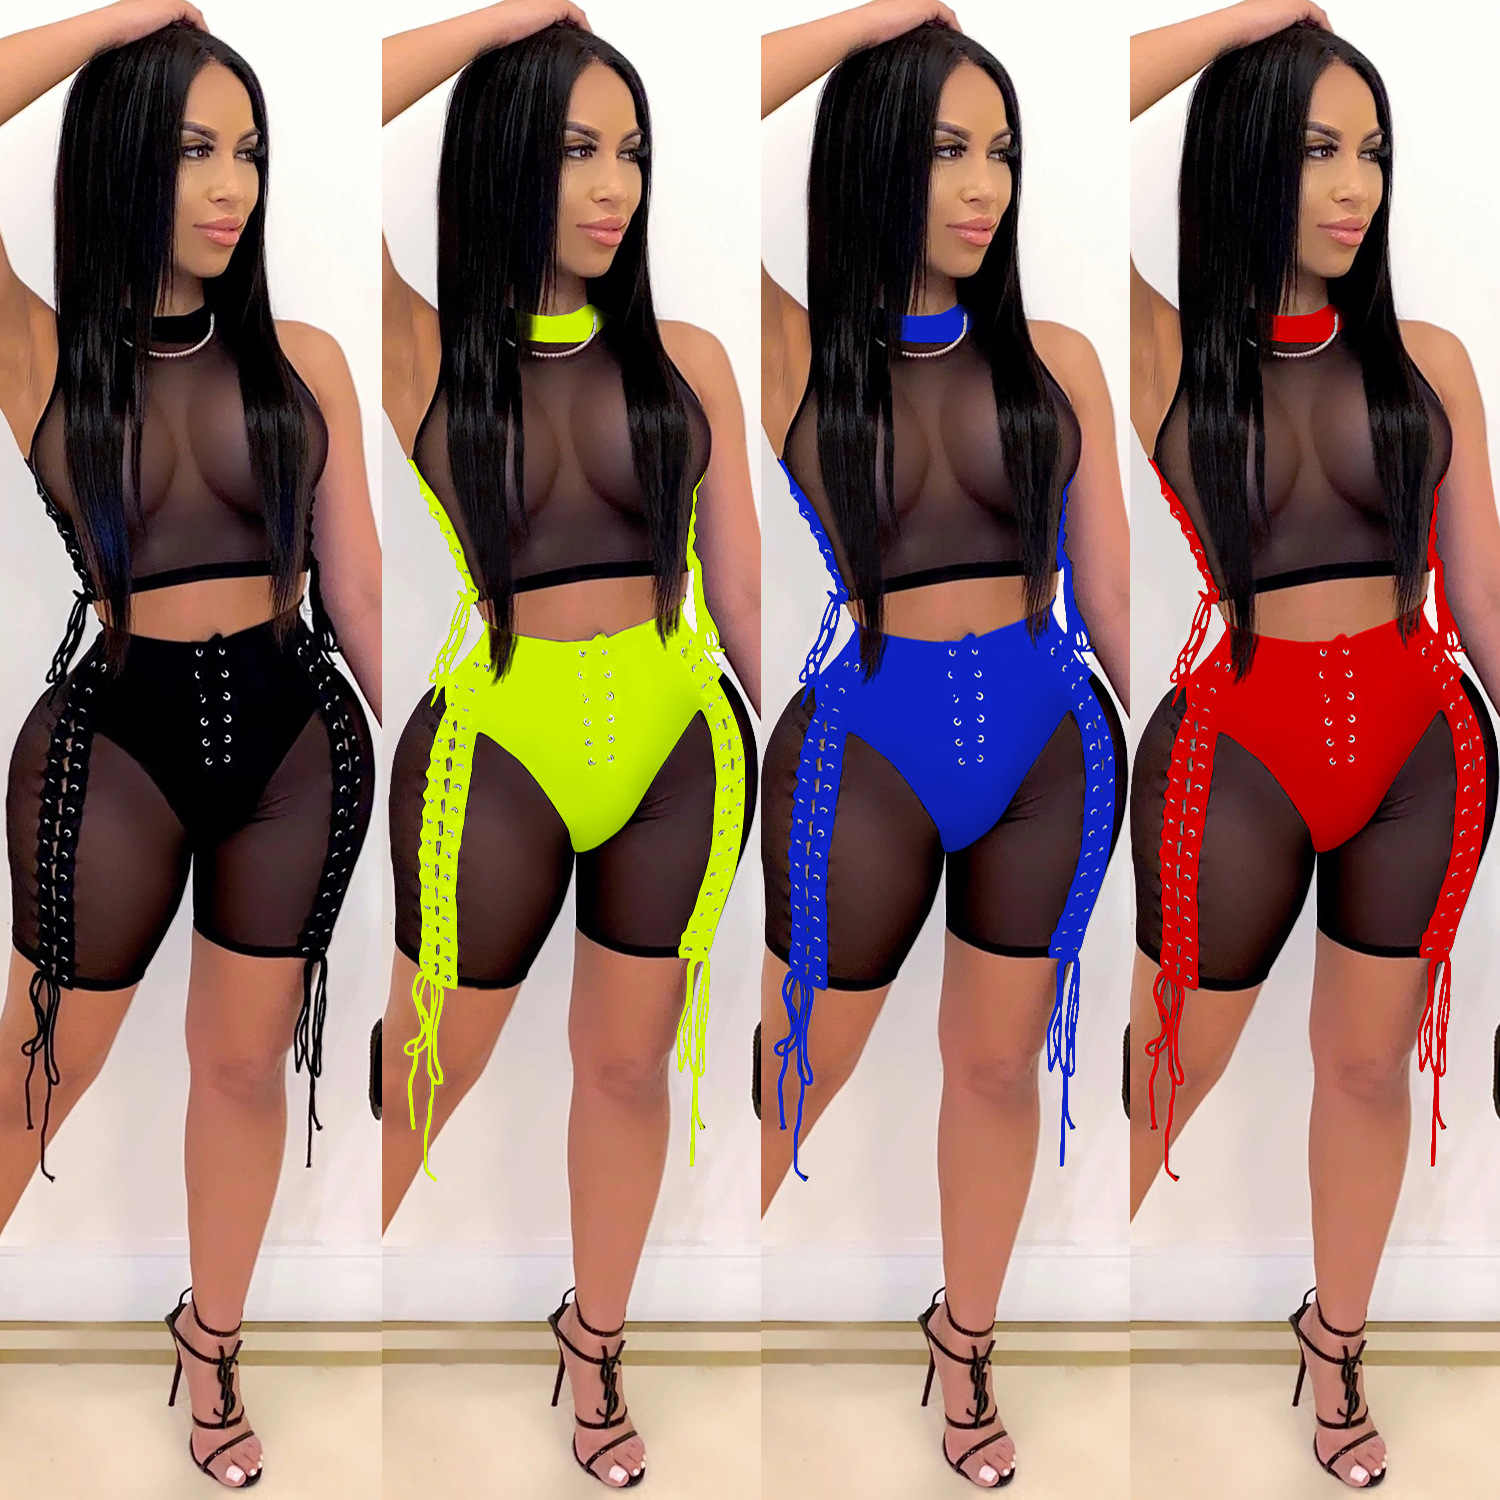 Zoctuo Vrouwen Lace Up Sexy Trainingspak Twee Delige Set Mesh See Hoewel Patchwork Tops En Shorts Pak Club Party Fitness outfits